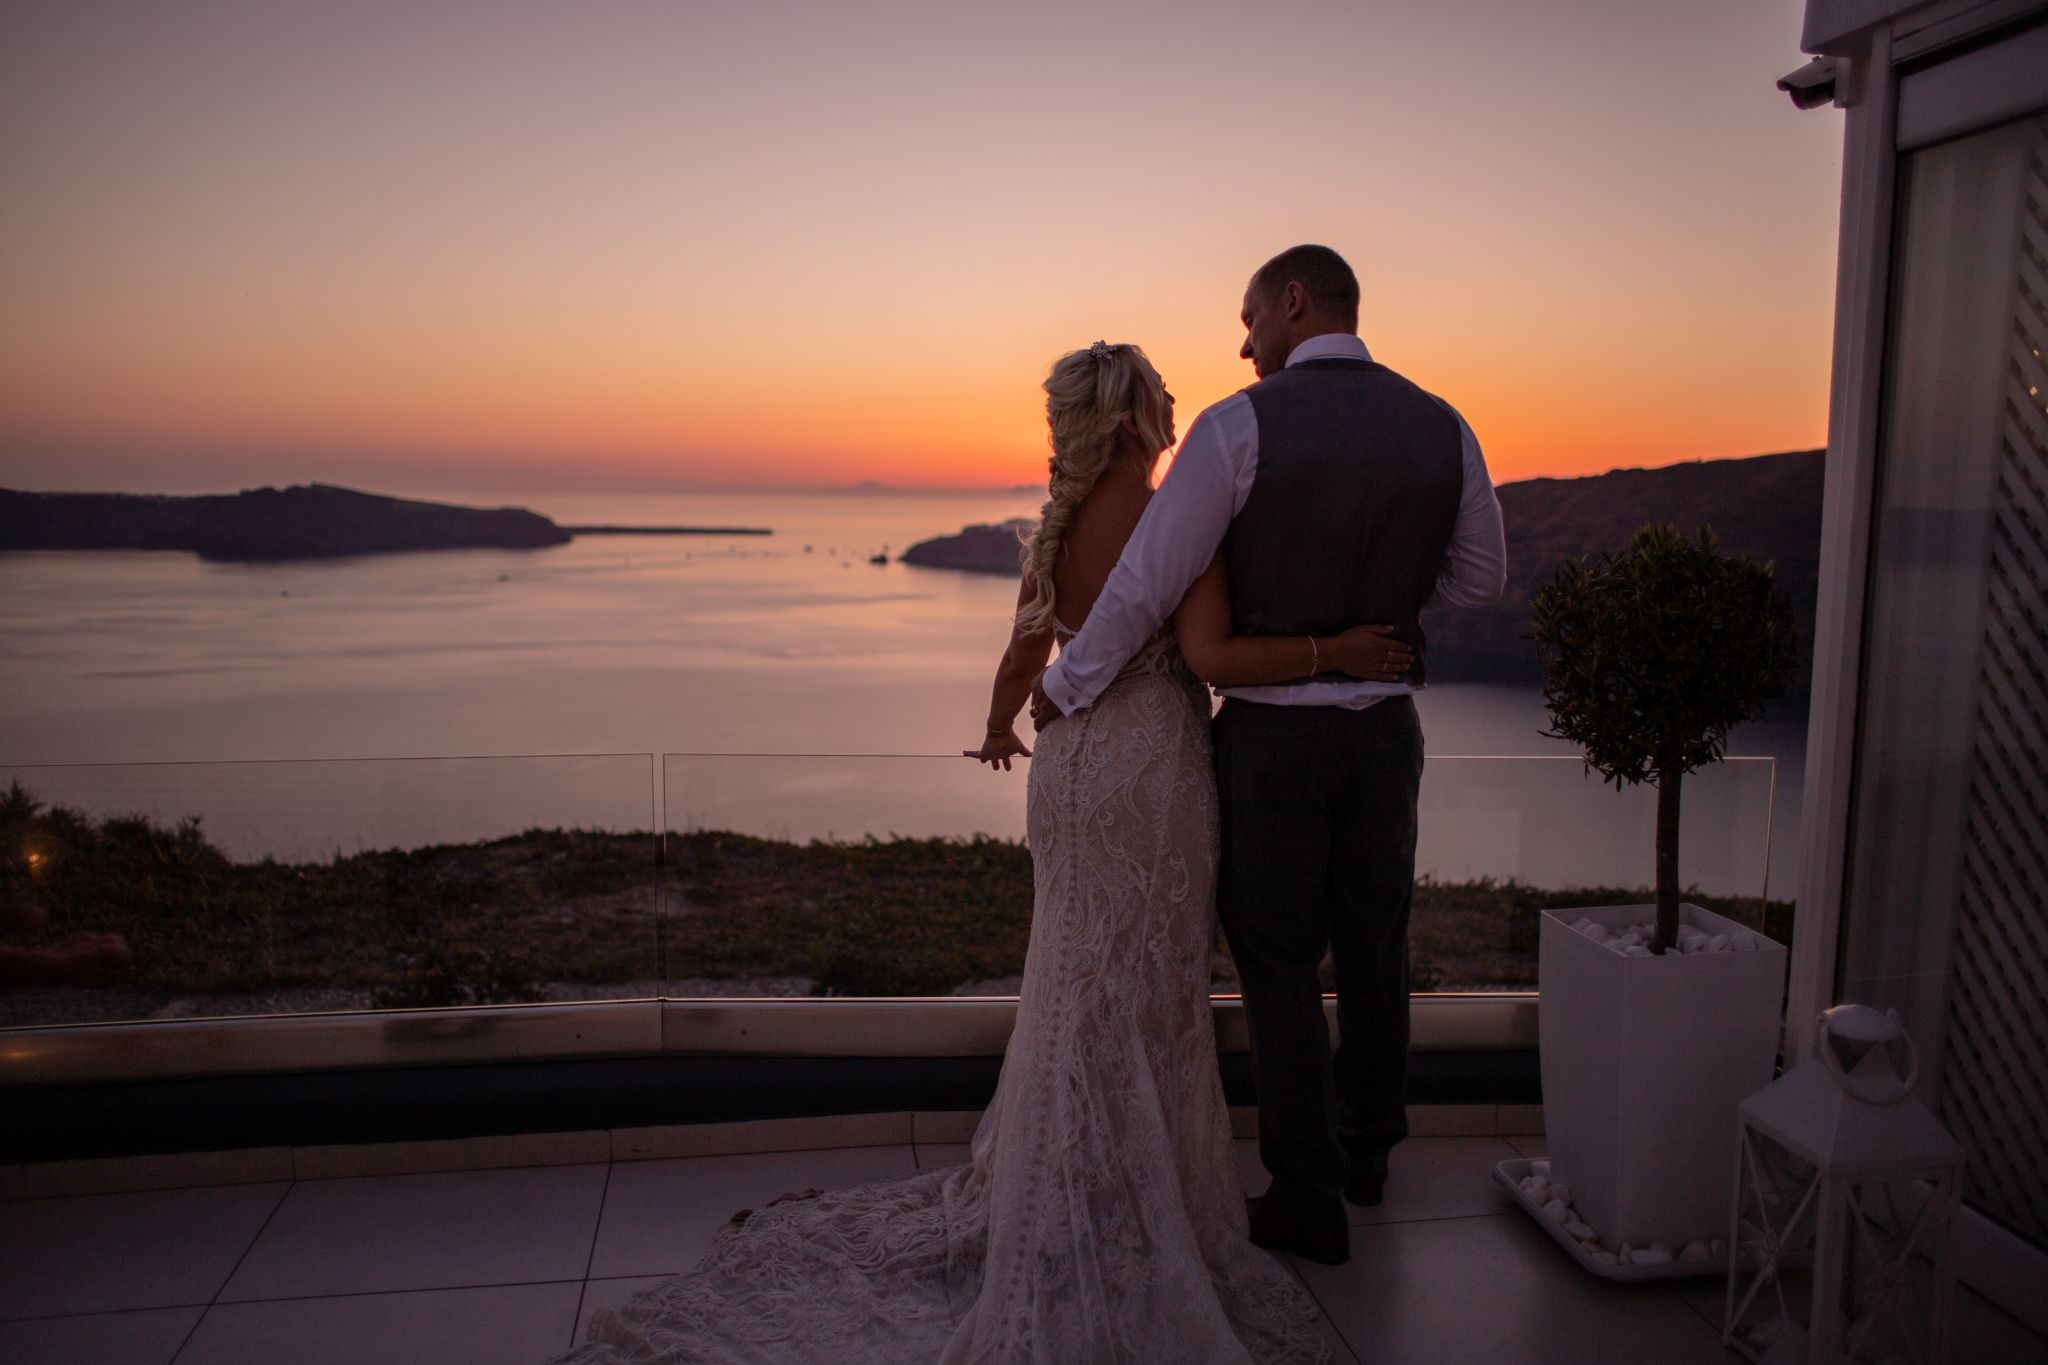 north east wedding photographer hannah layford wedding photography santorini wedding bride and groom watching sunset